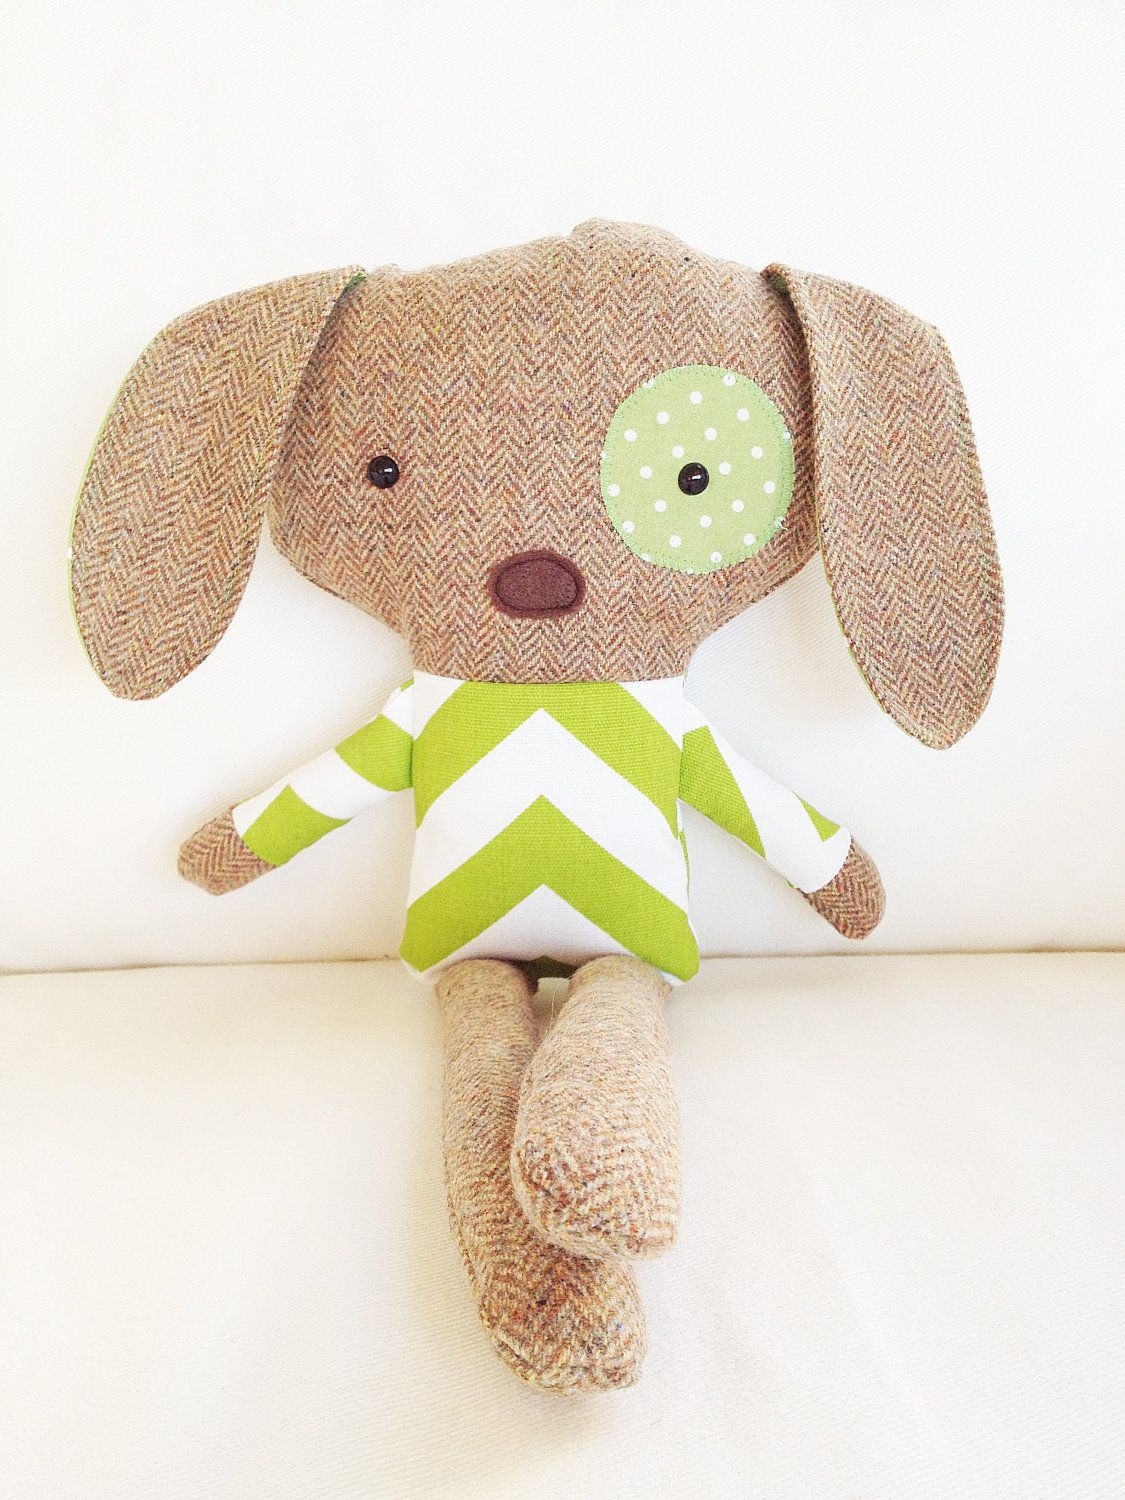 Sew A Cute Puppy Pillow Softie : Dog softie pattern. By using different fabric for body and arms it looks like he s wearing a ...